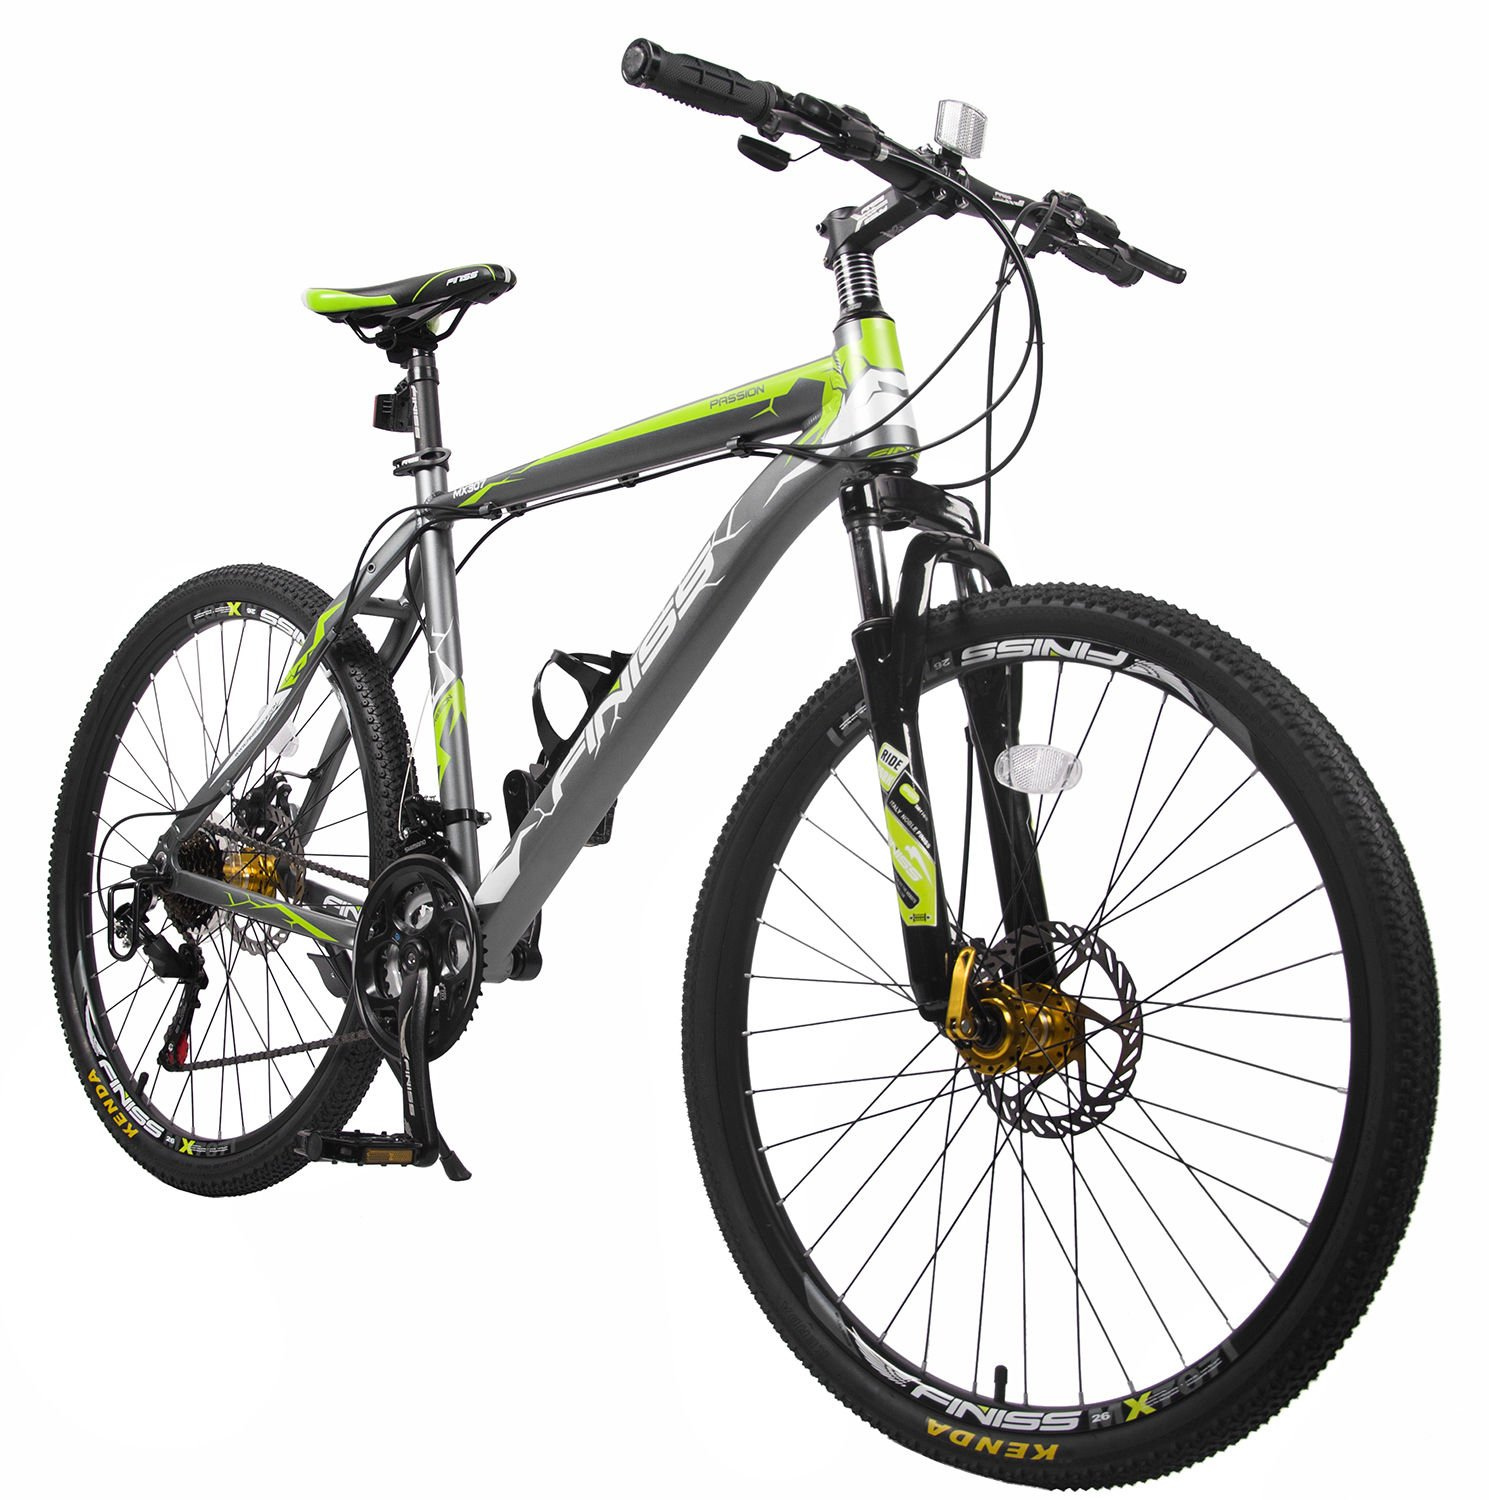 Top 10 Best Mountain Bikes (2020 Reviews & Buying Guide) 7